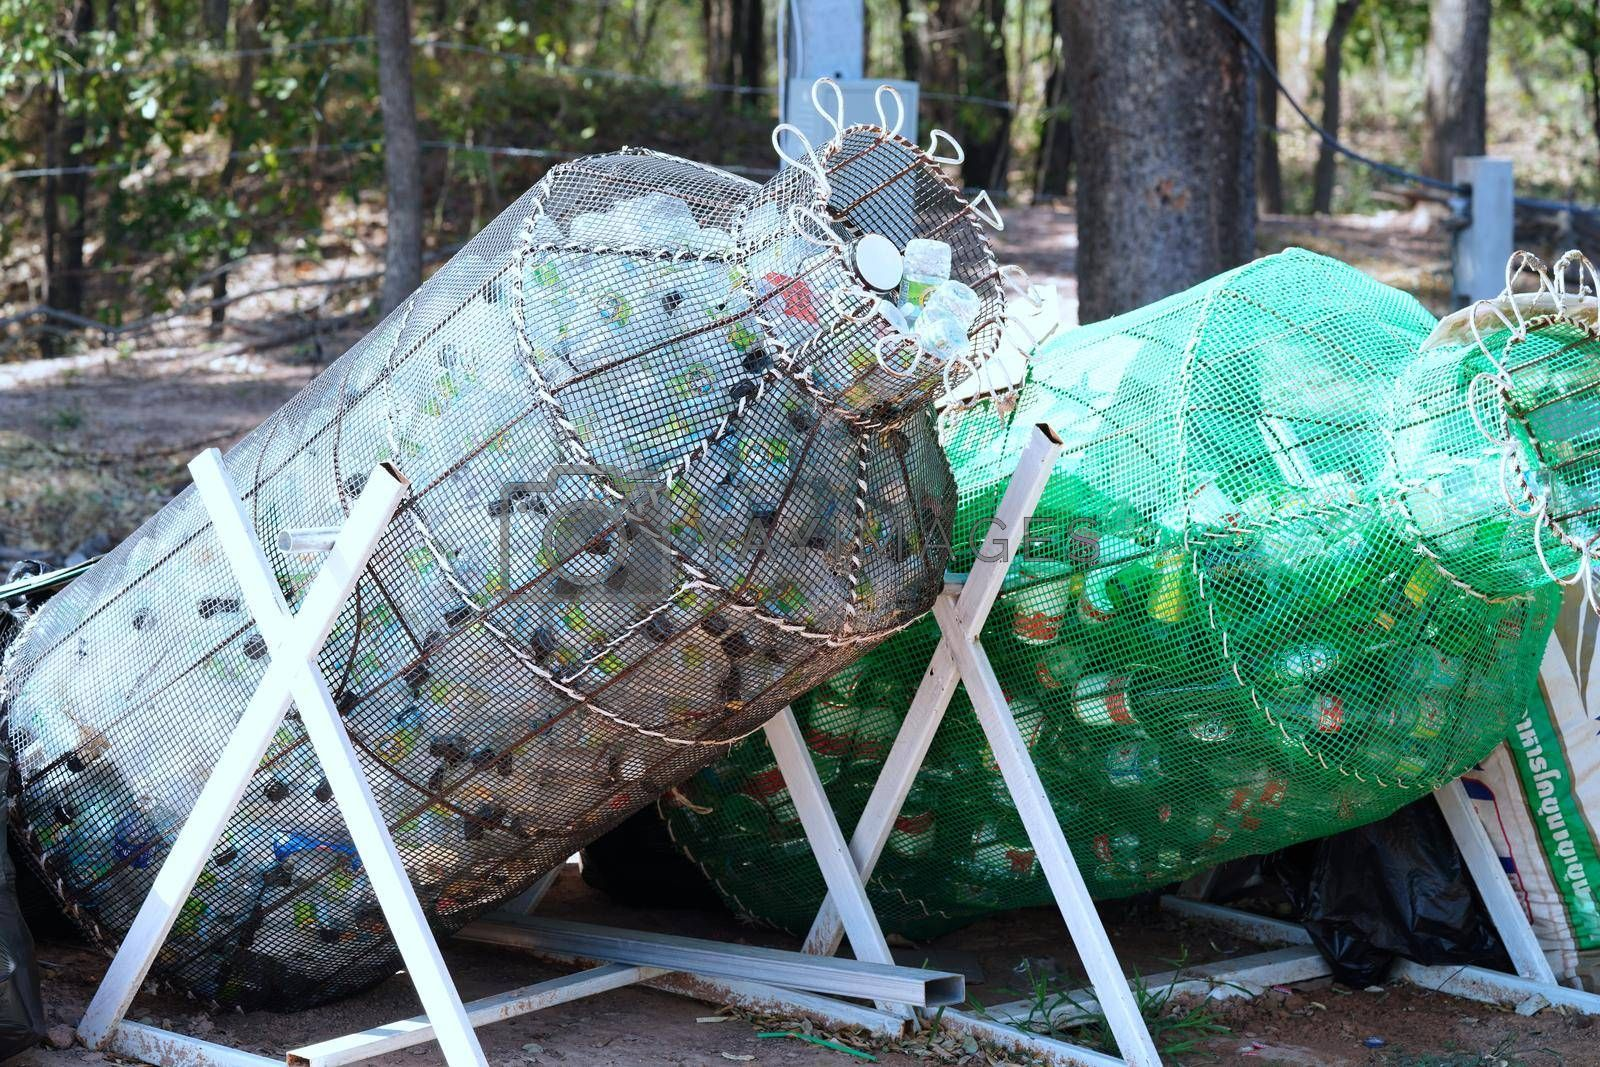 Garbage collection in Thailand for recycling And recycling, energy and environment conservation concept.